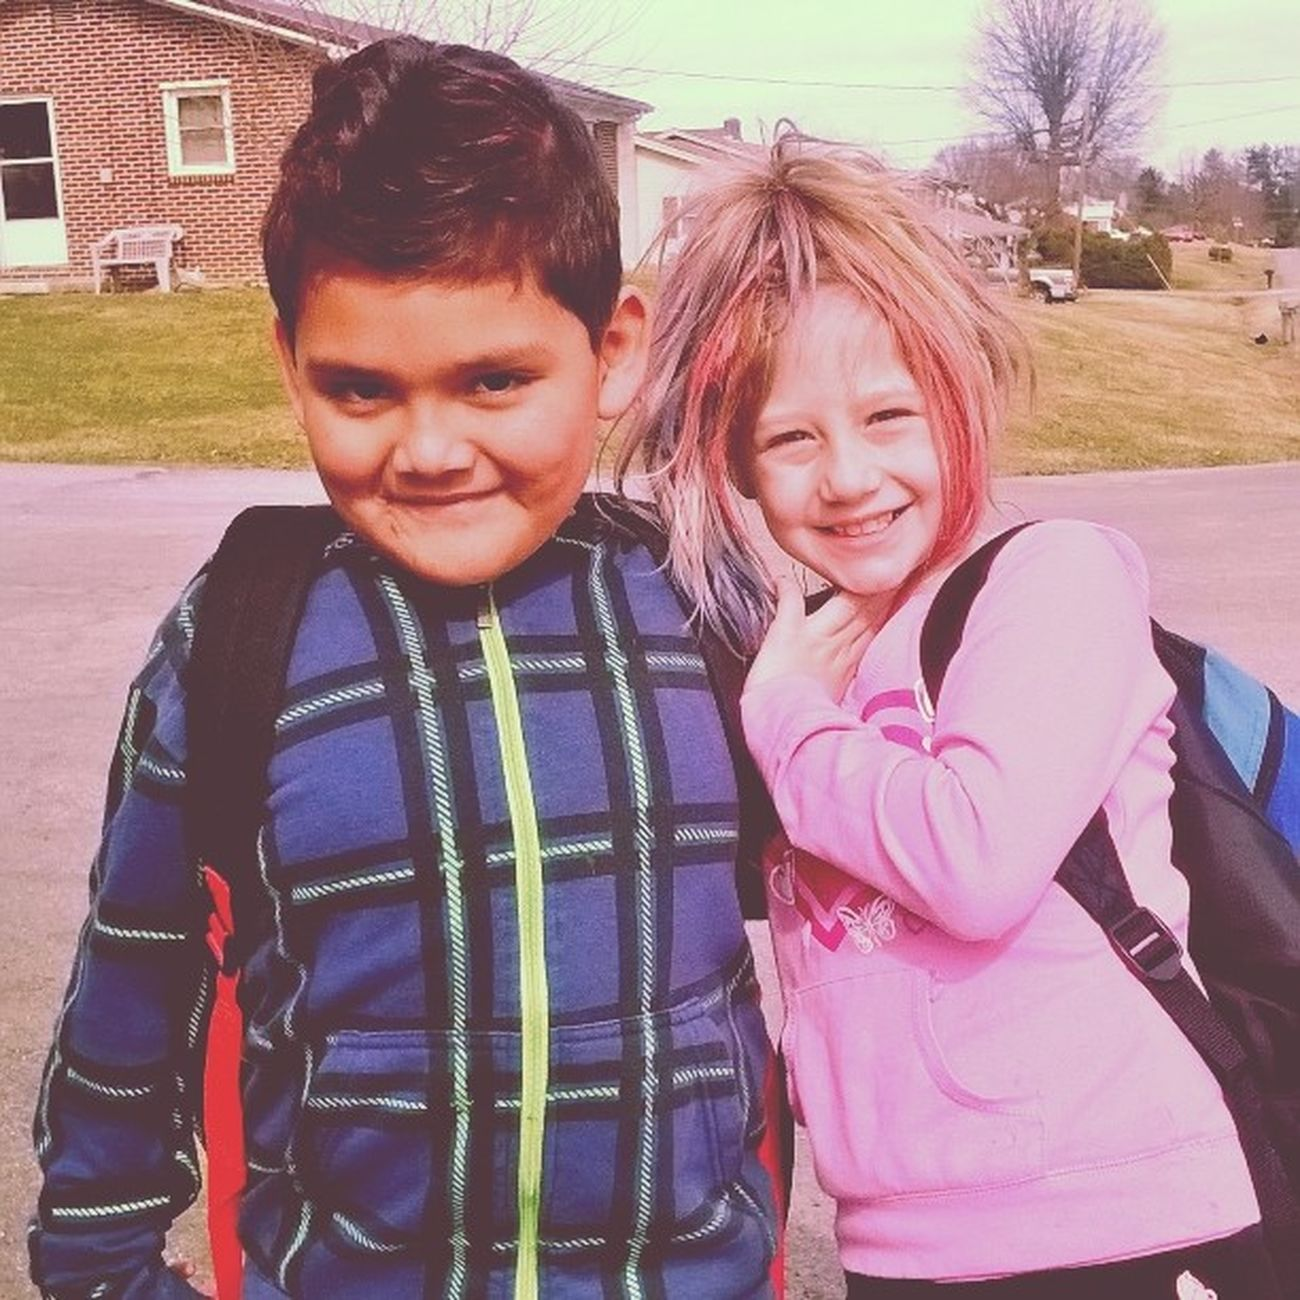 Crazy Hair Day at school. Ryan has a red faux hawk, but it's kinda hard to see. CrazyHairDay Fauxhawk Redpinkblue Sidepony besties schooldaze backpacks busstop